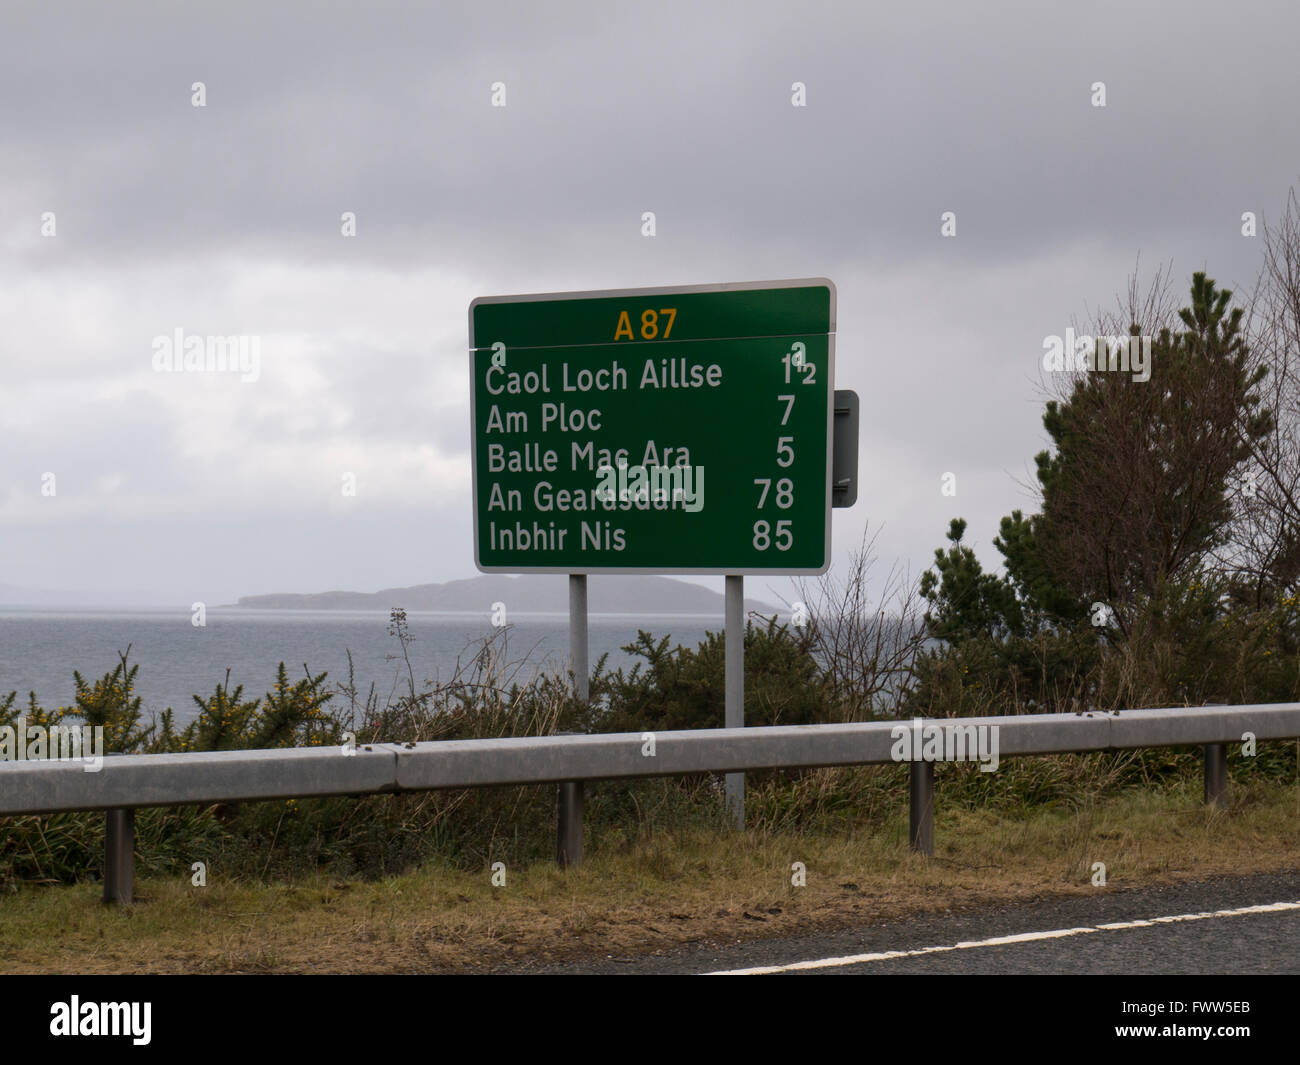 Road sign in gaelic - Stock Image